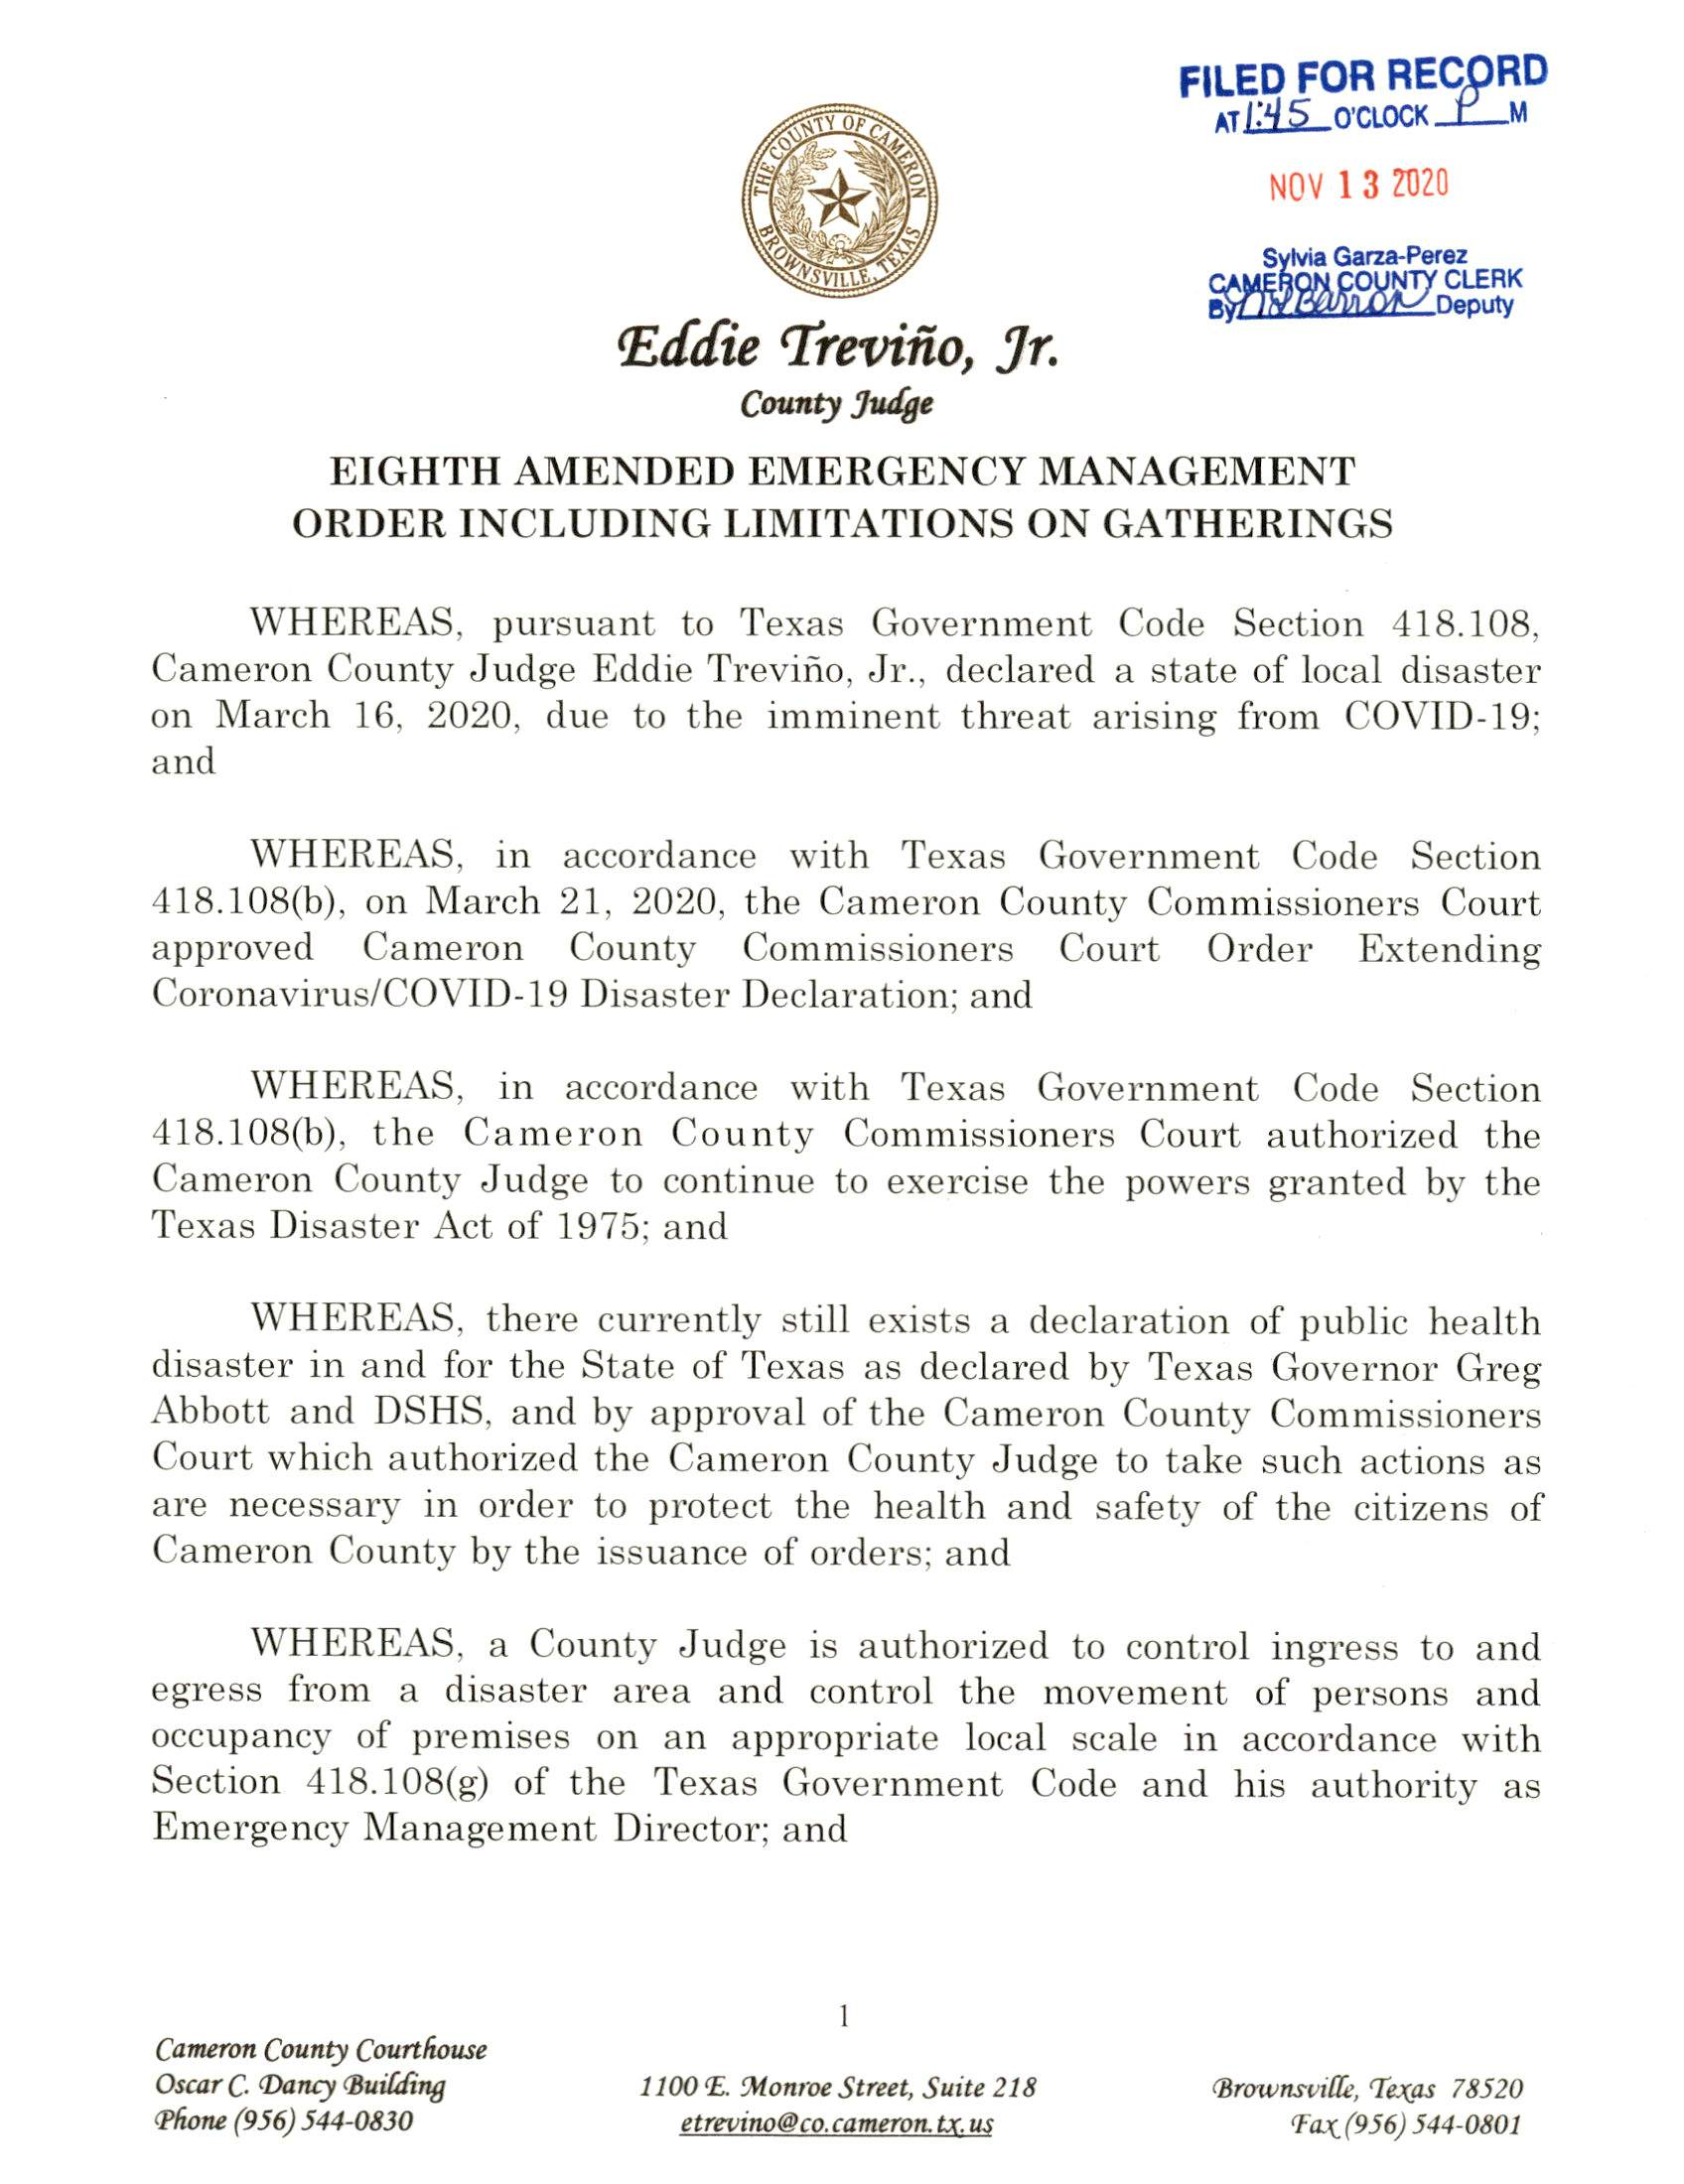 2020.11.13 Eight Amended Emergency Management Order Including Limitations On Gatherings 004 Page 1